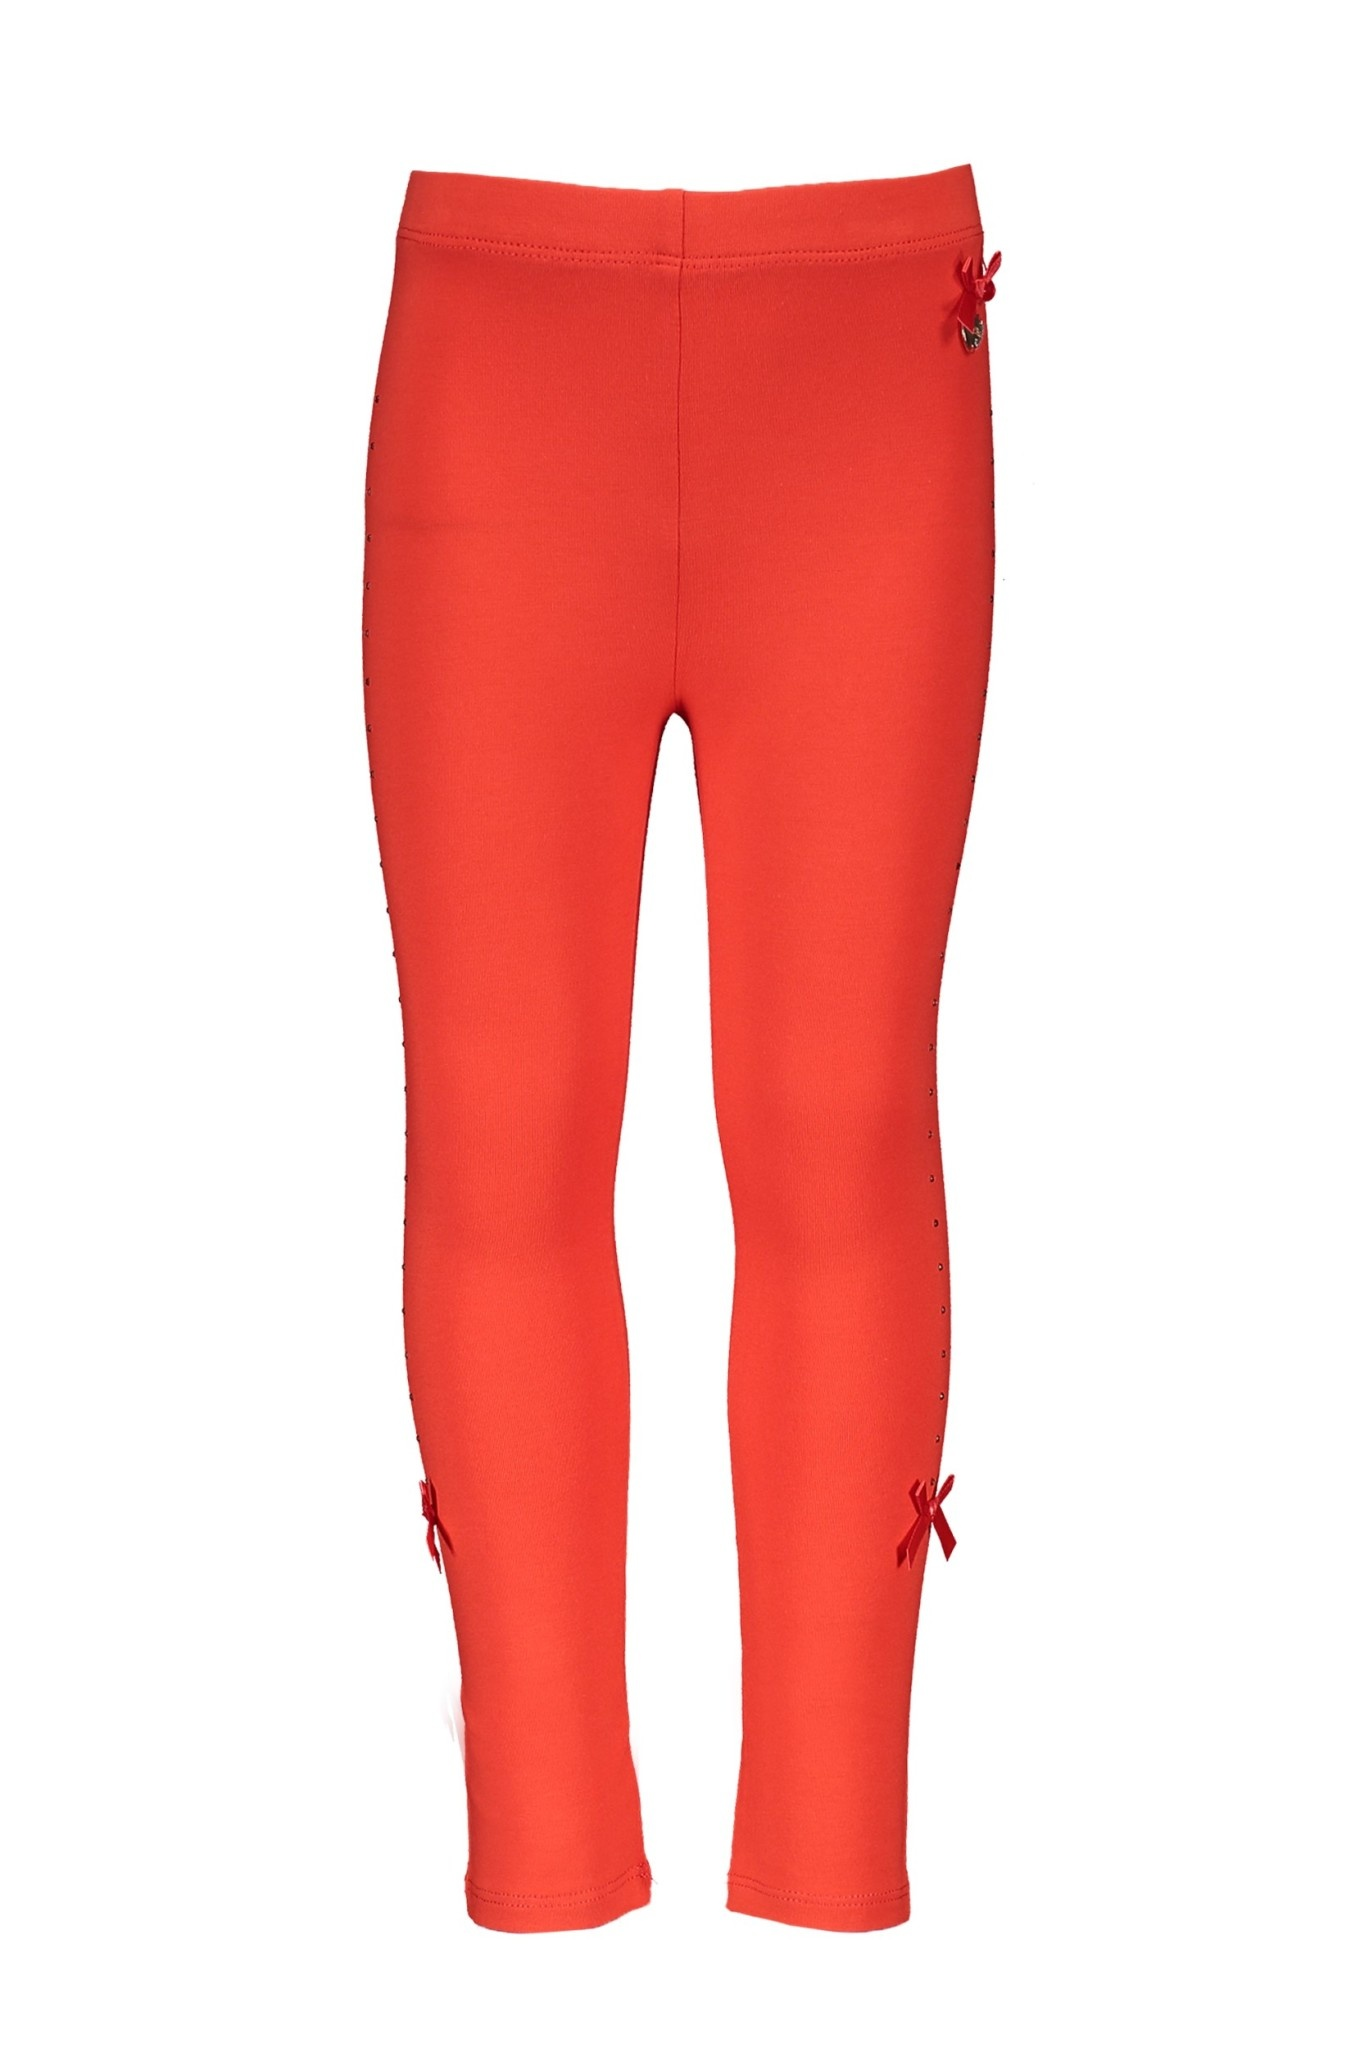 Lechic Le Chic Red Leggings with Rhinestones